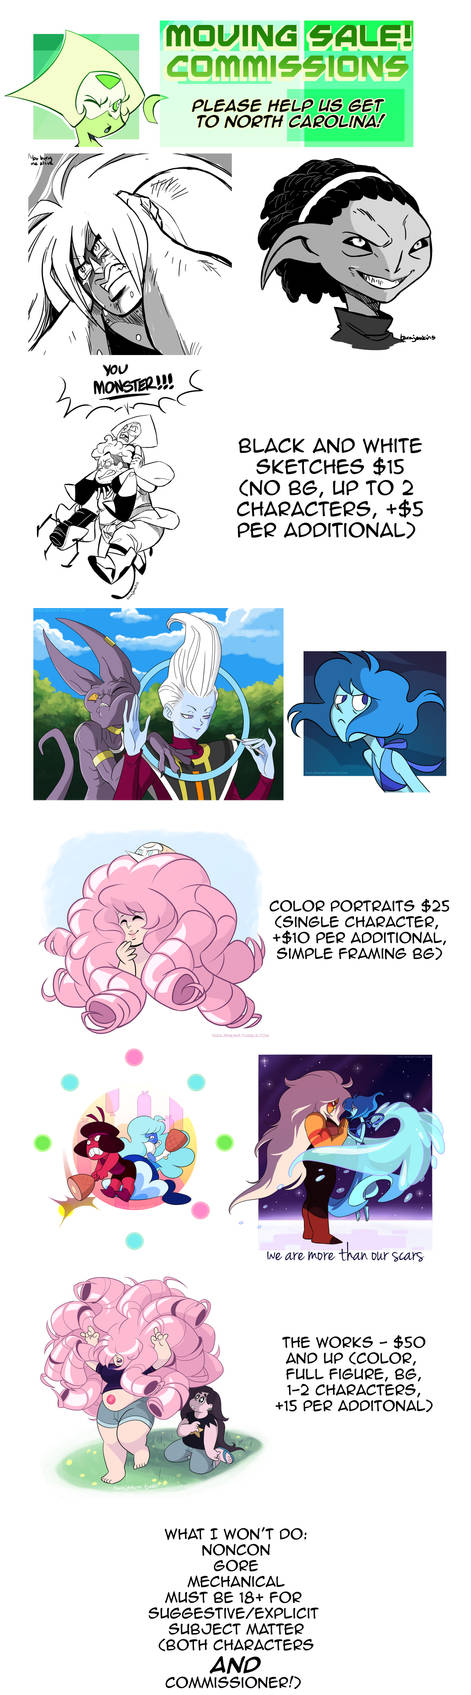 Moving Sale - Commissions!